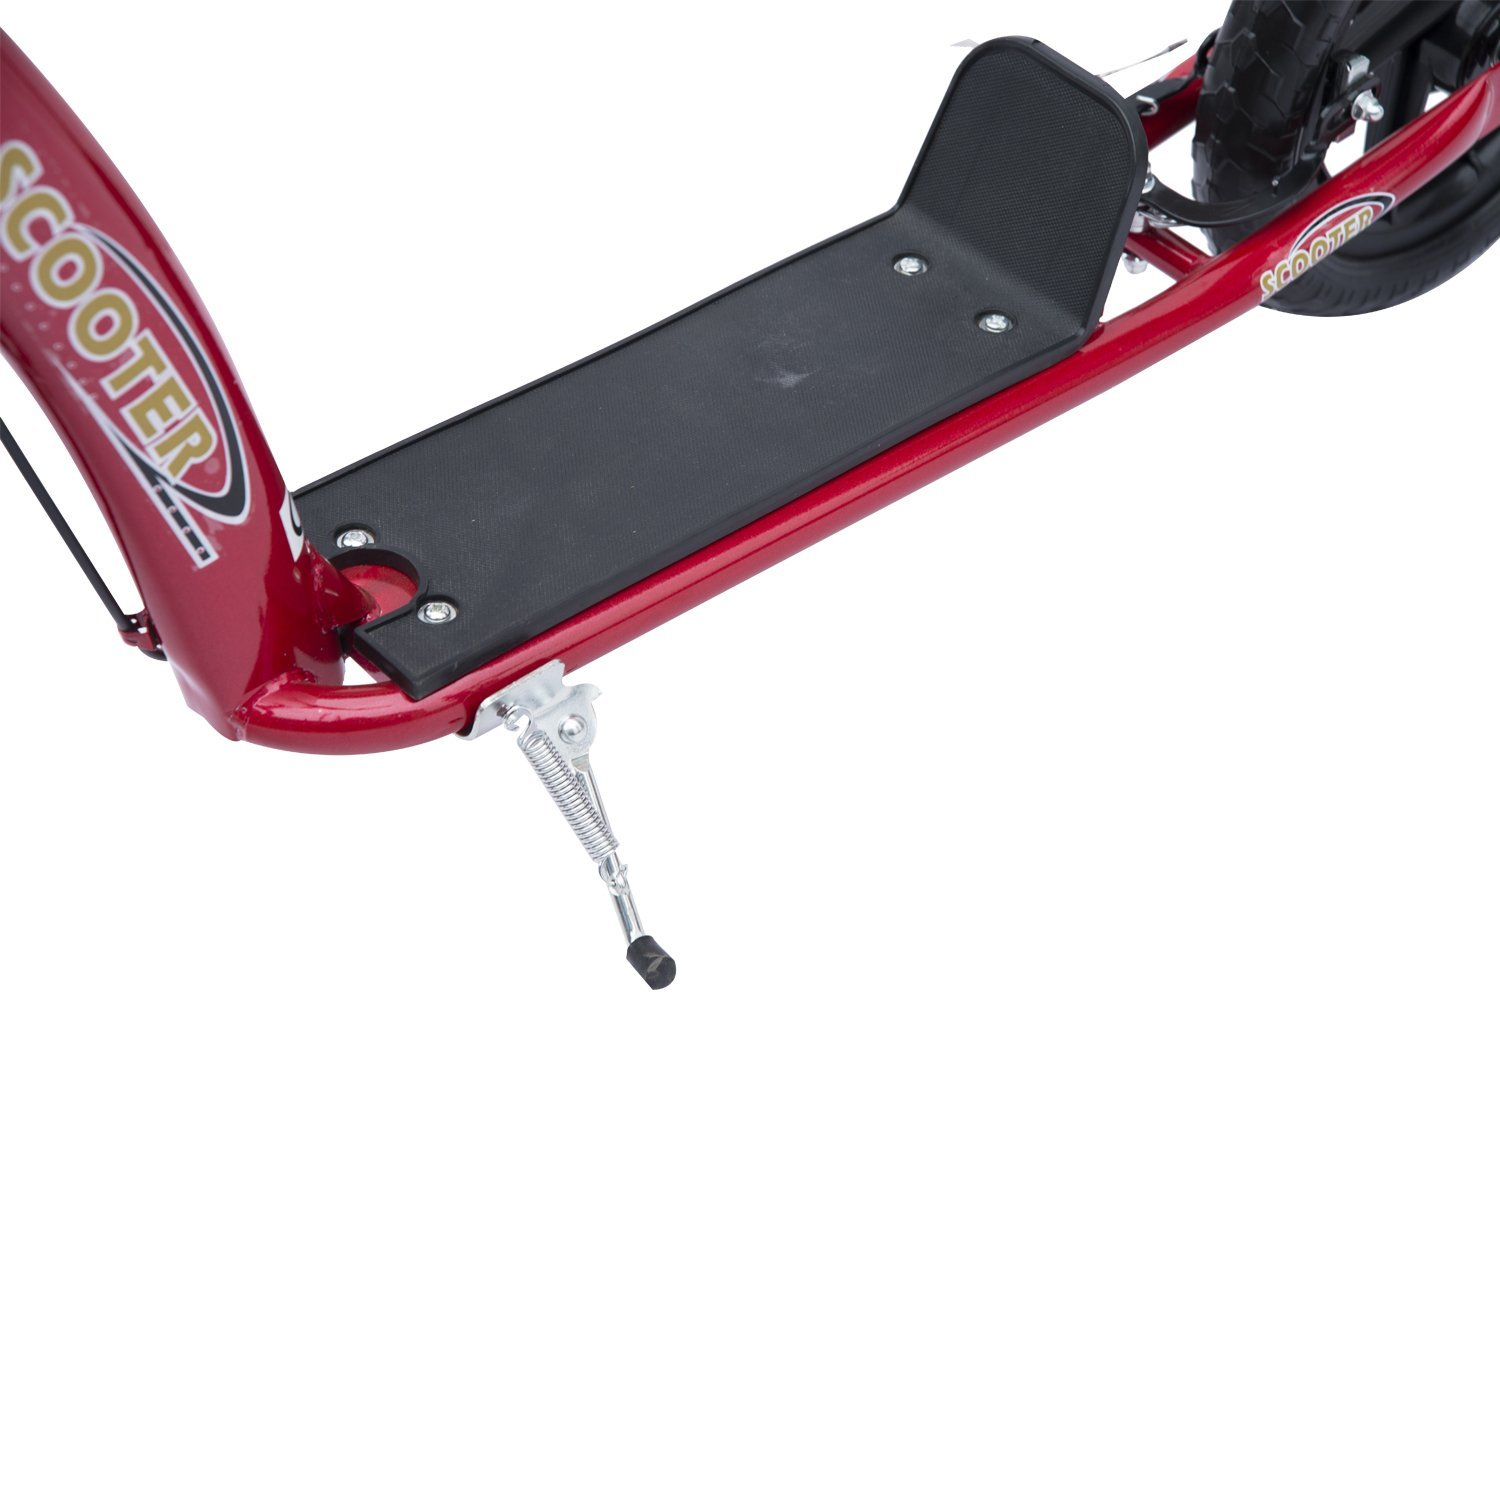 Teen-Push-Scooter-Kids-Children-Stunt-Scooter-Bike-Bicycle-Ride-On-12-034-Tyres-New thumbnail 29